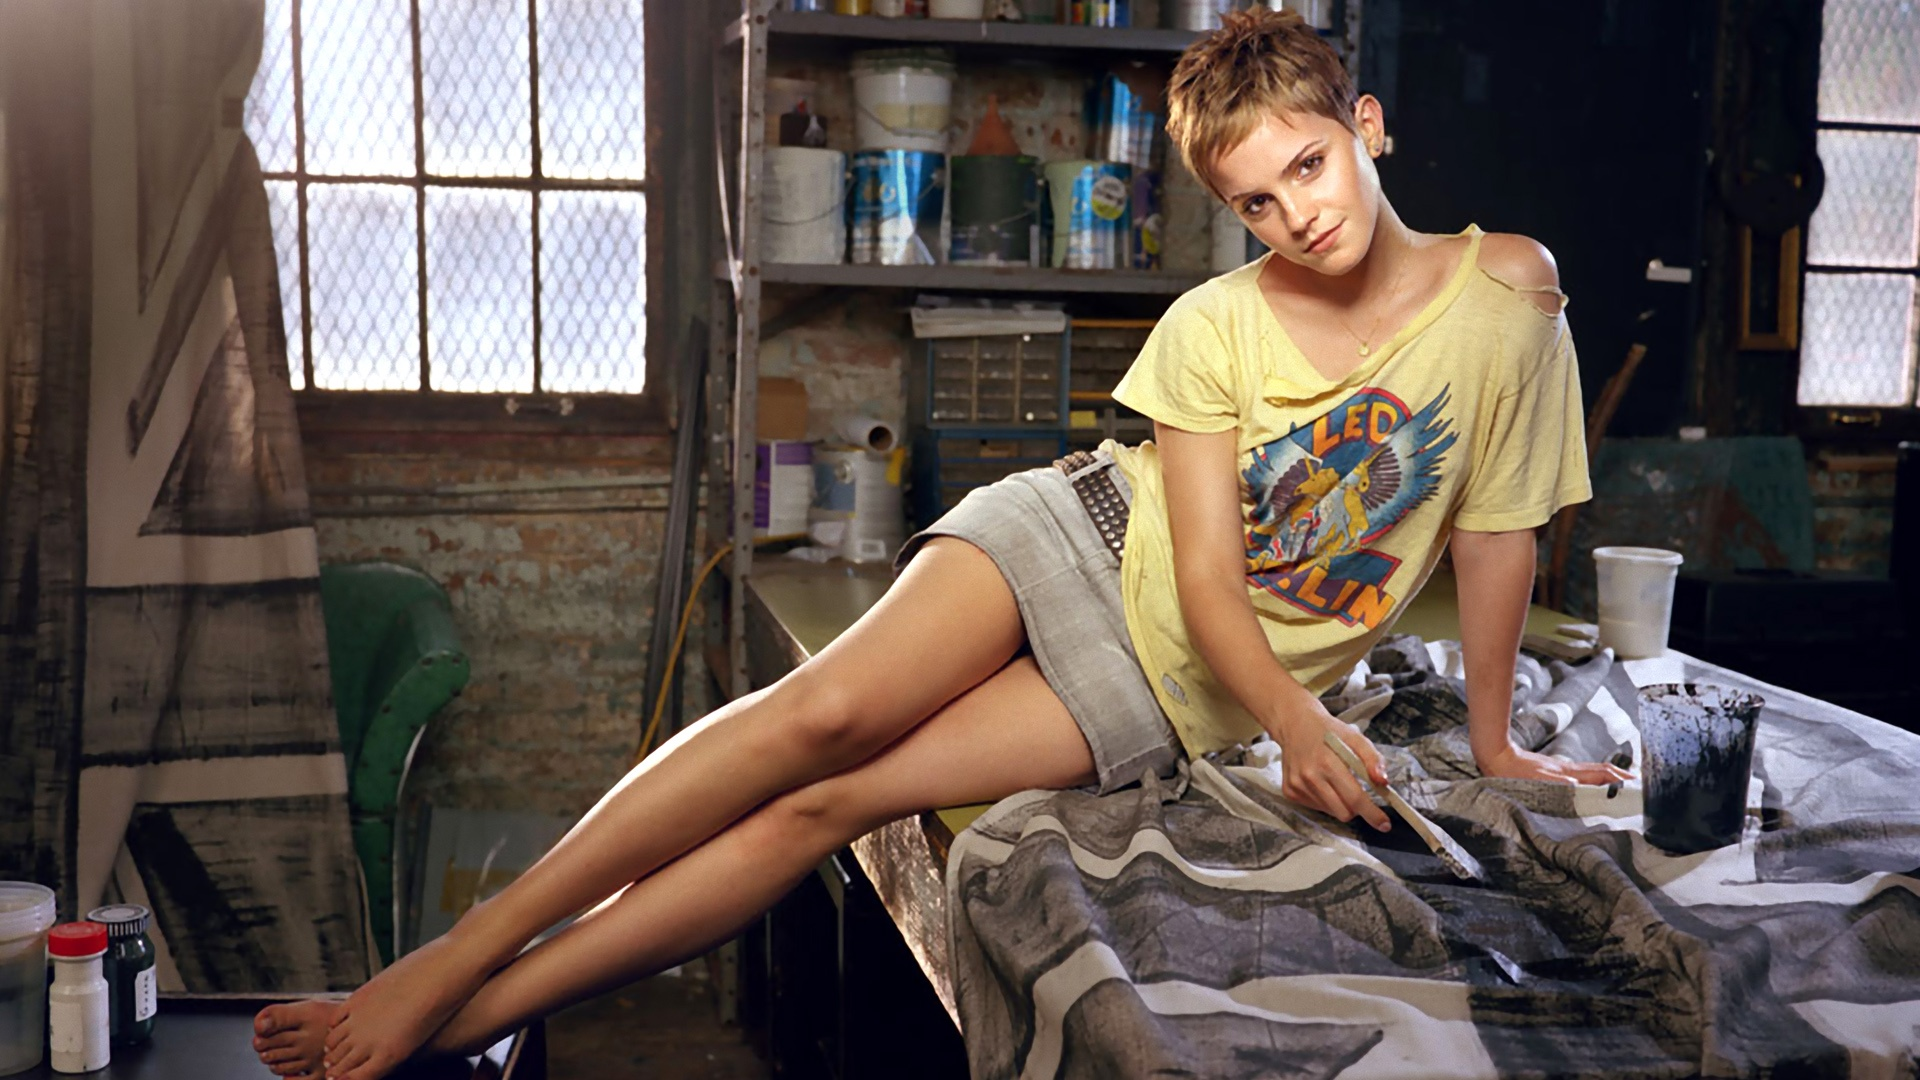 emma watson pictures hd A27